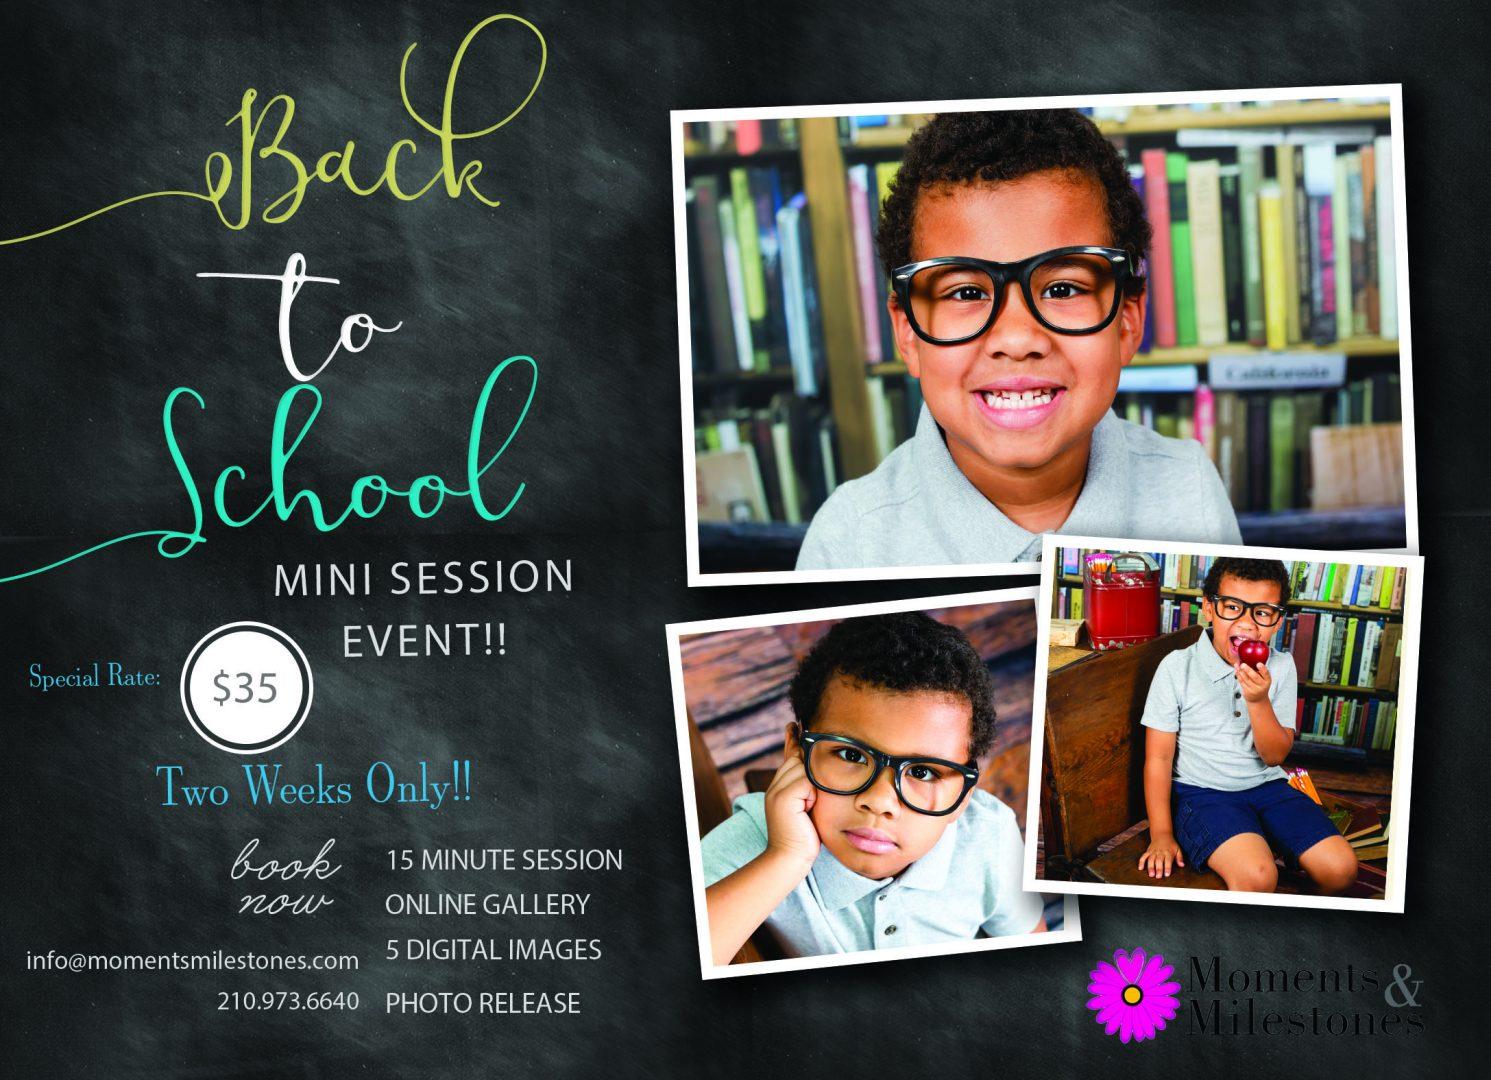 Back to School Mini Session Event!